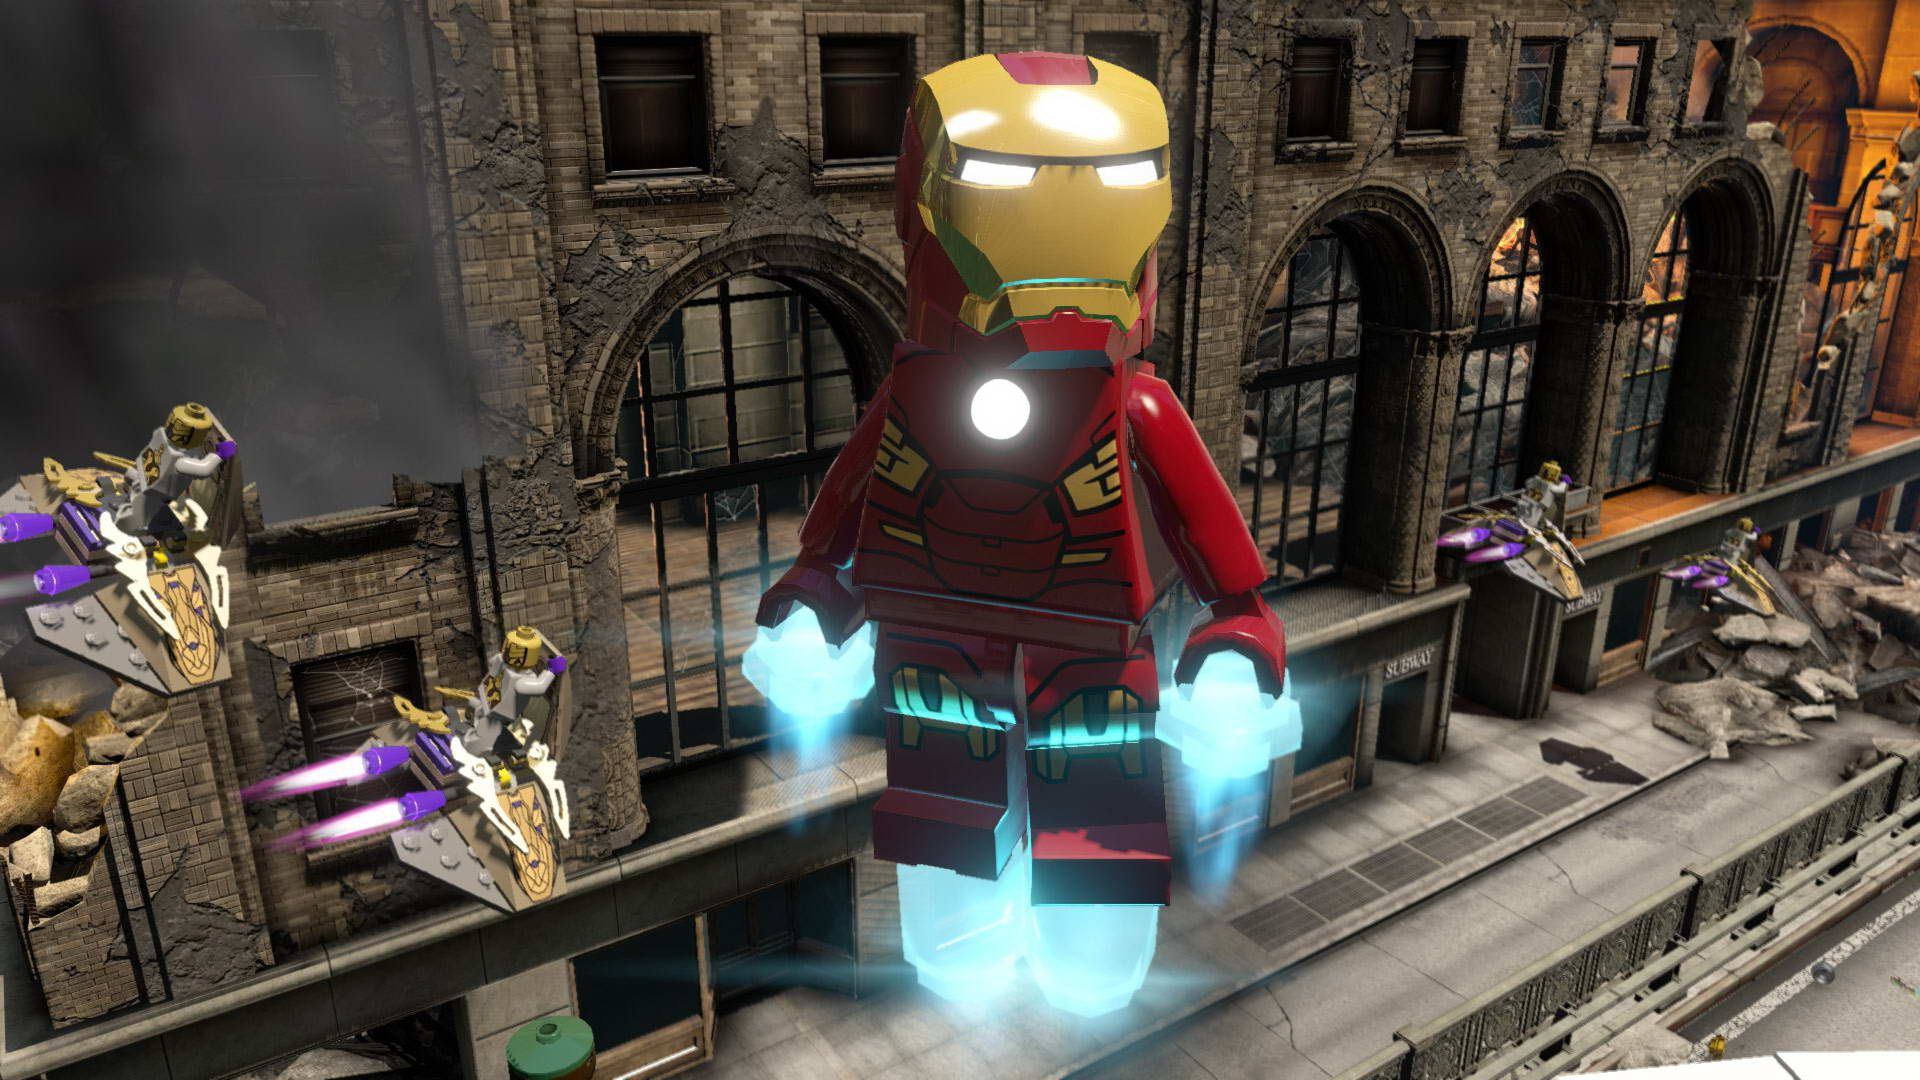 lego marvel wallpaper for desktop - photo #20